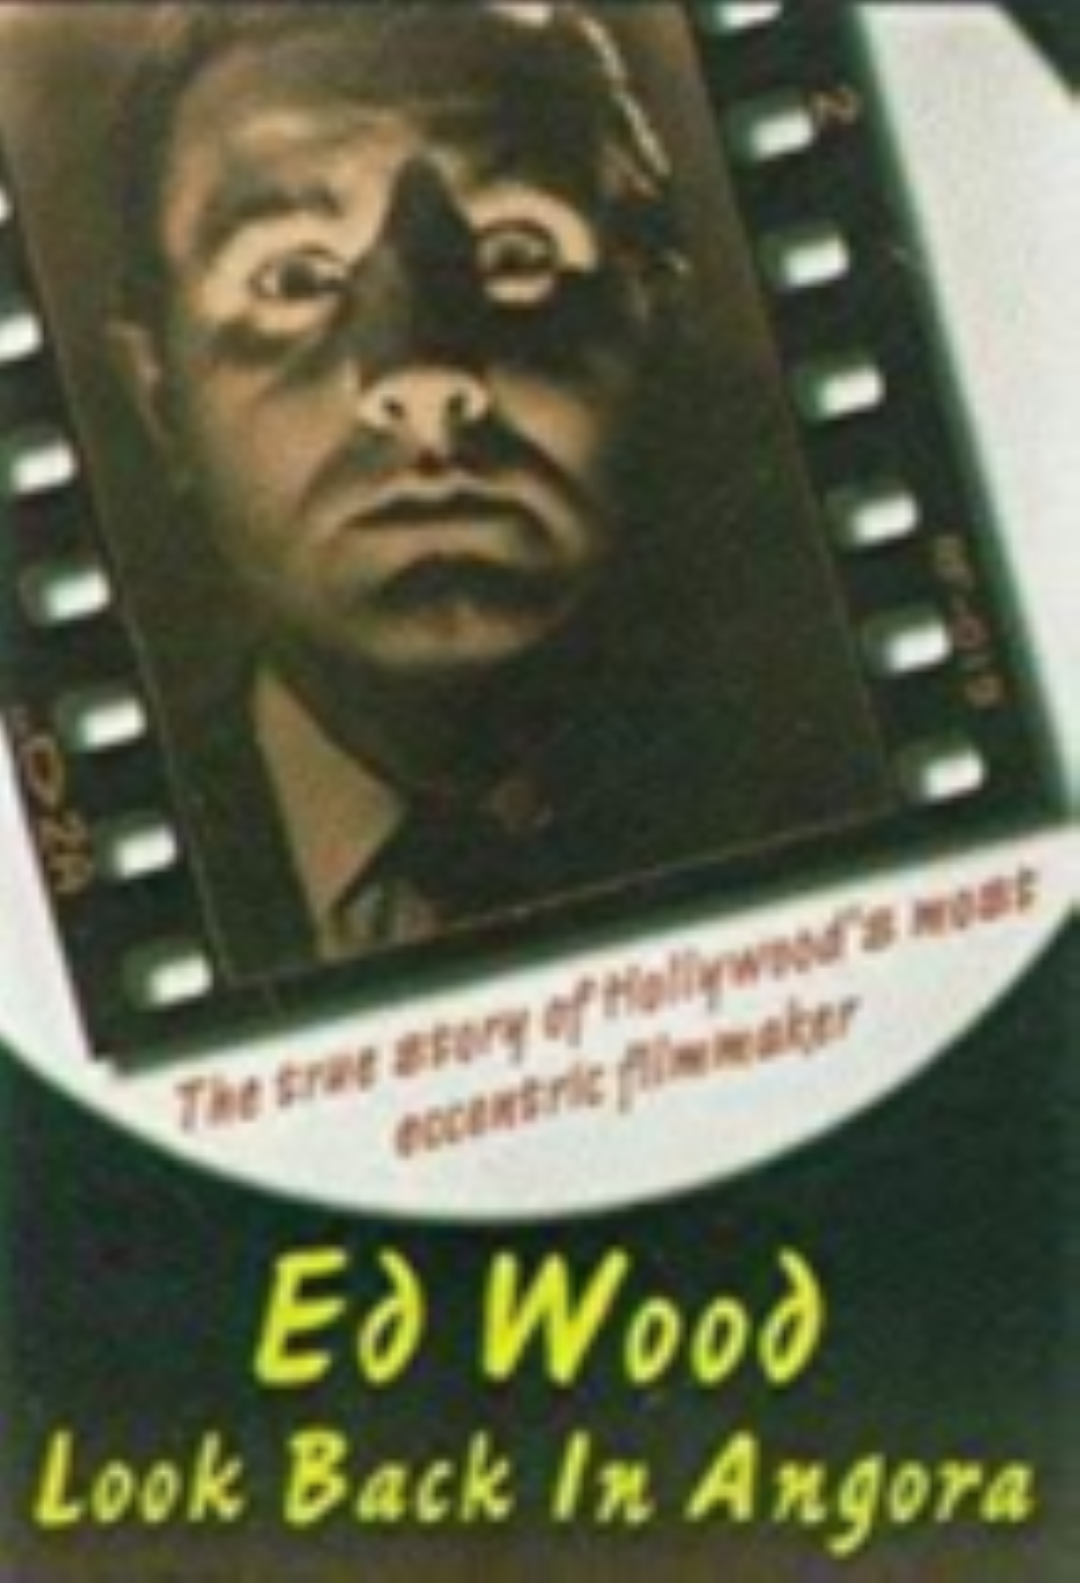 Ed Wood: Look Back in Angora Vhs